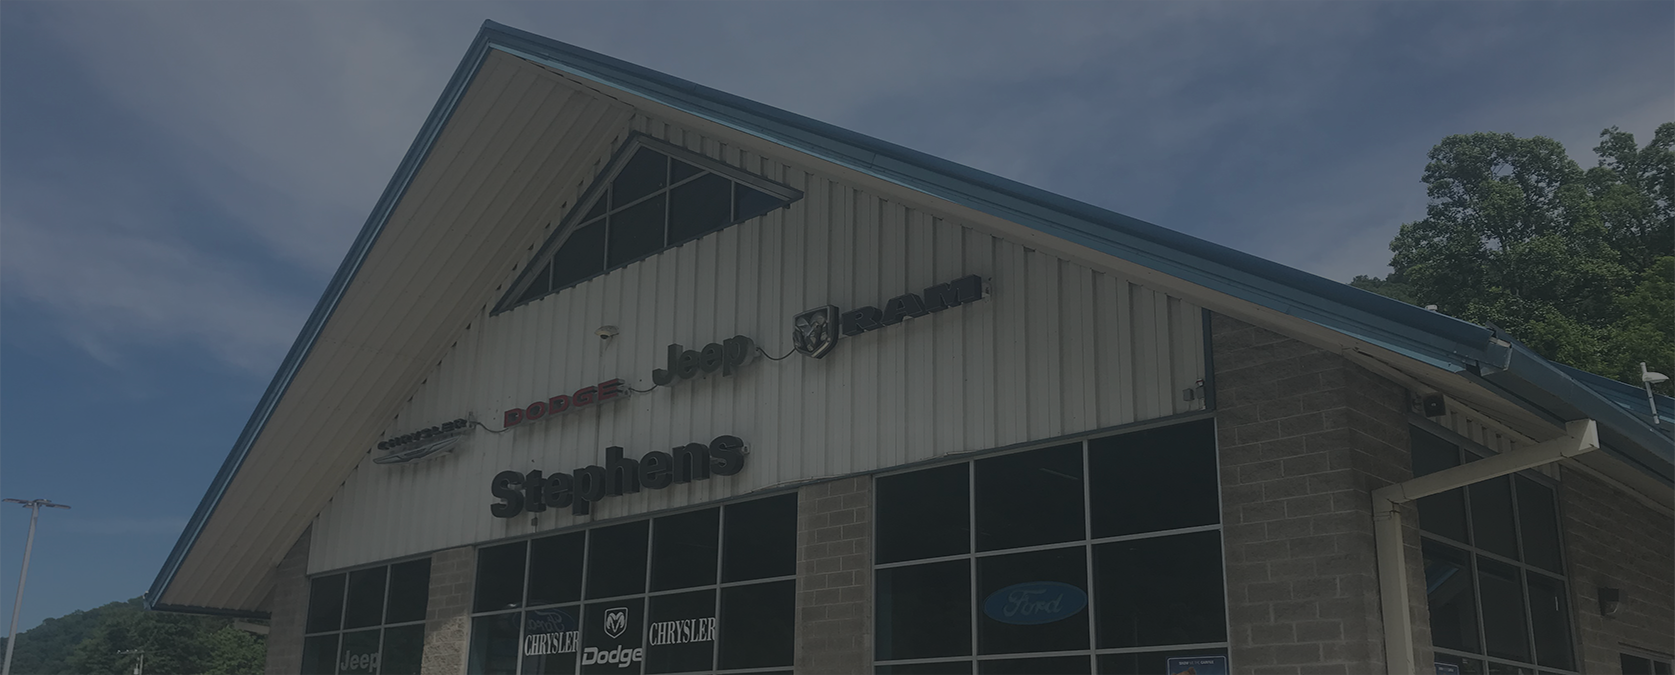 Cascade Auto Finance >> Home - Stephens Auto Center of Danville and Beckley